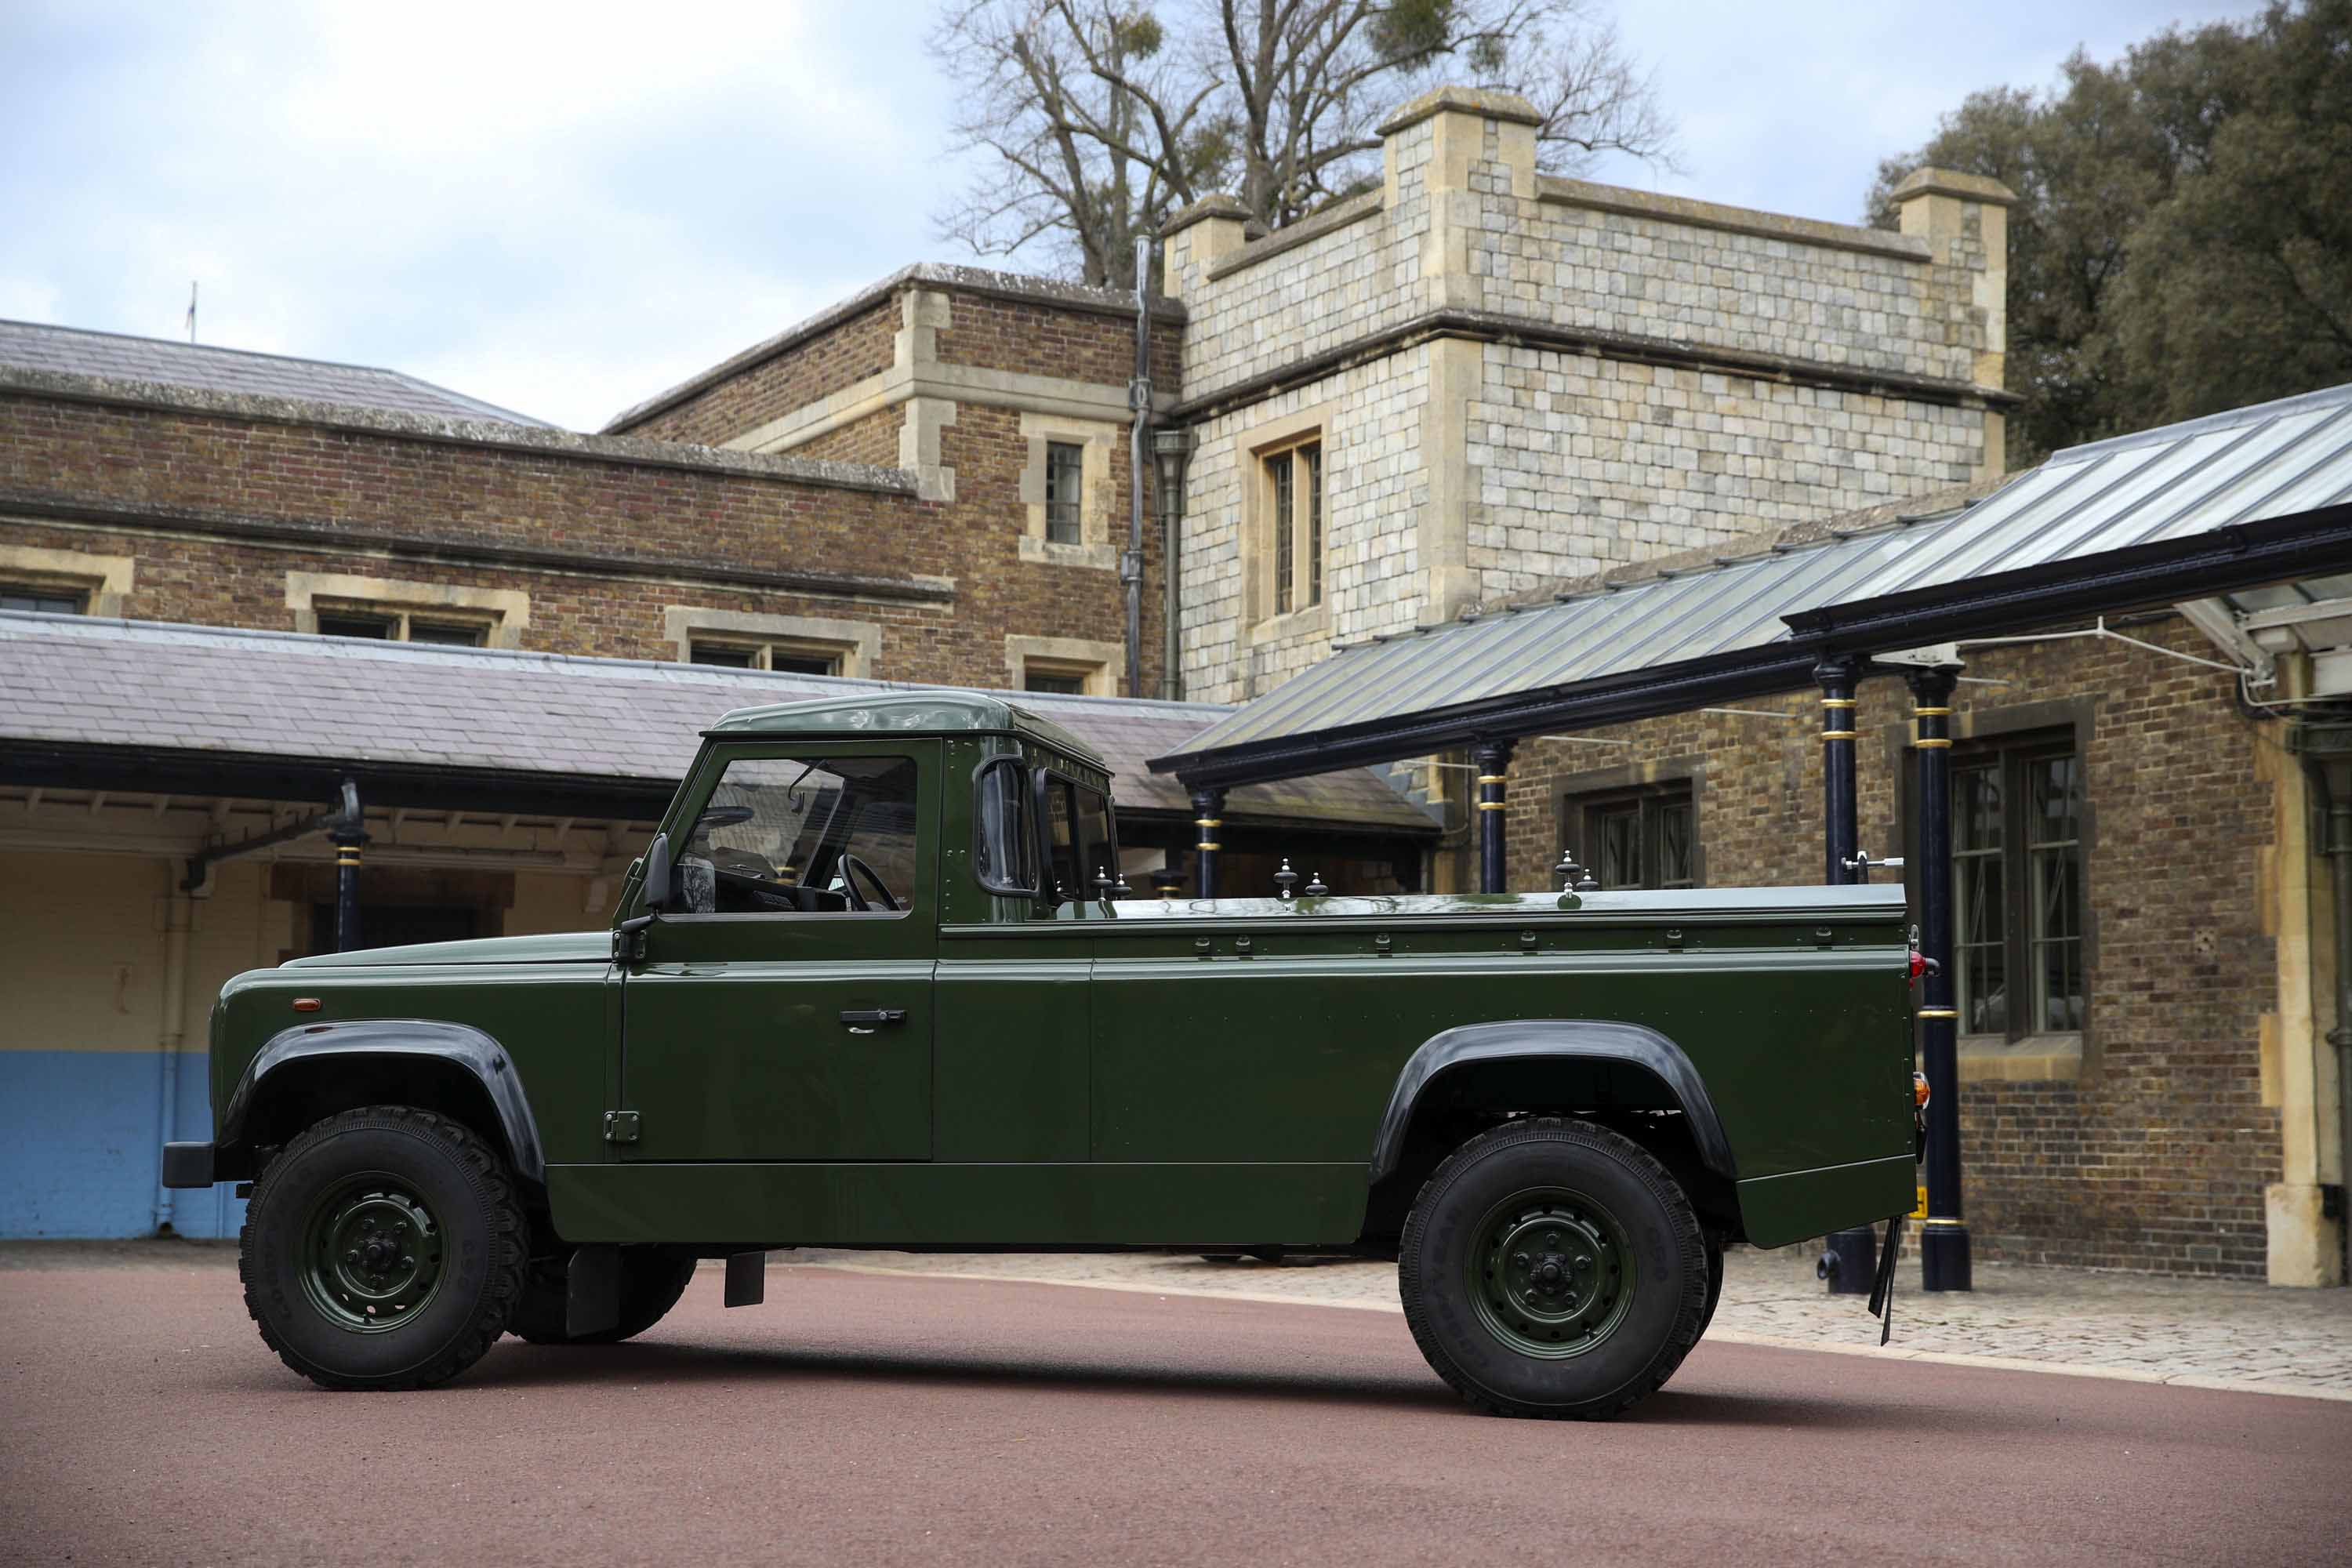 The Land Rover that will be used to transport the coffin of Prince Philip is displayed at Windsor Castle, on April 15.